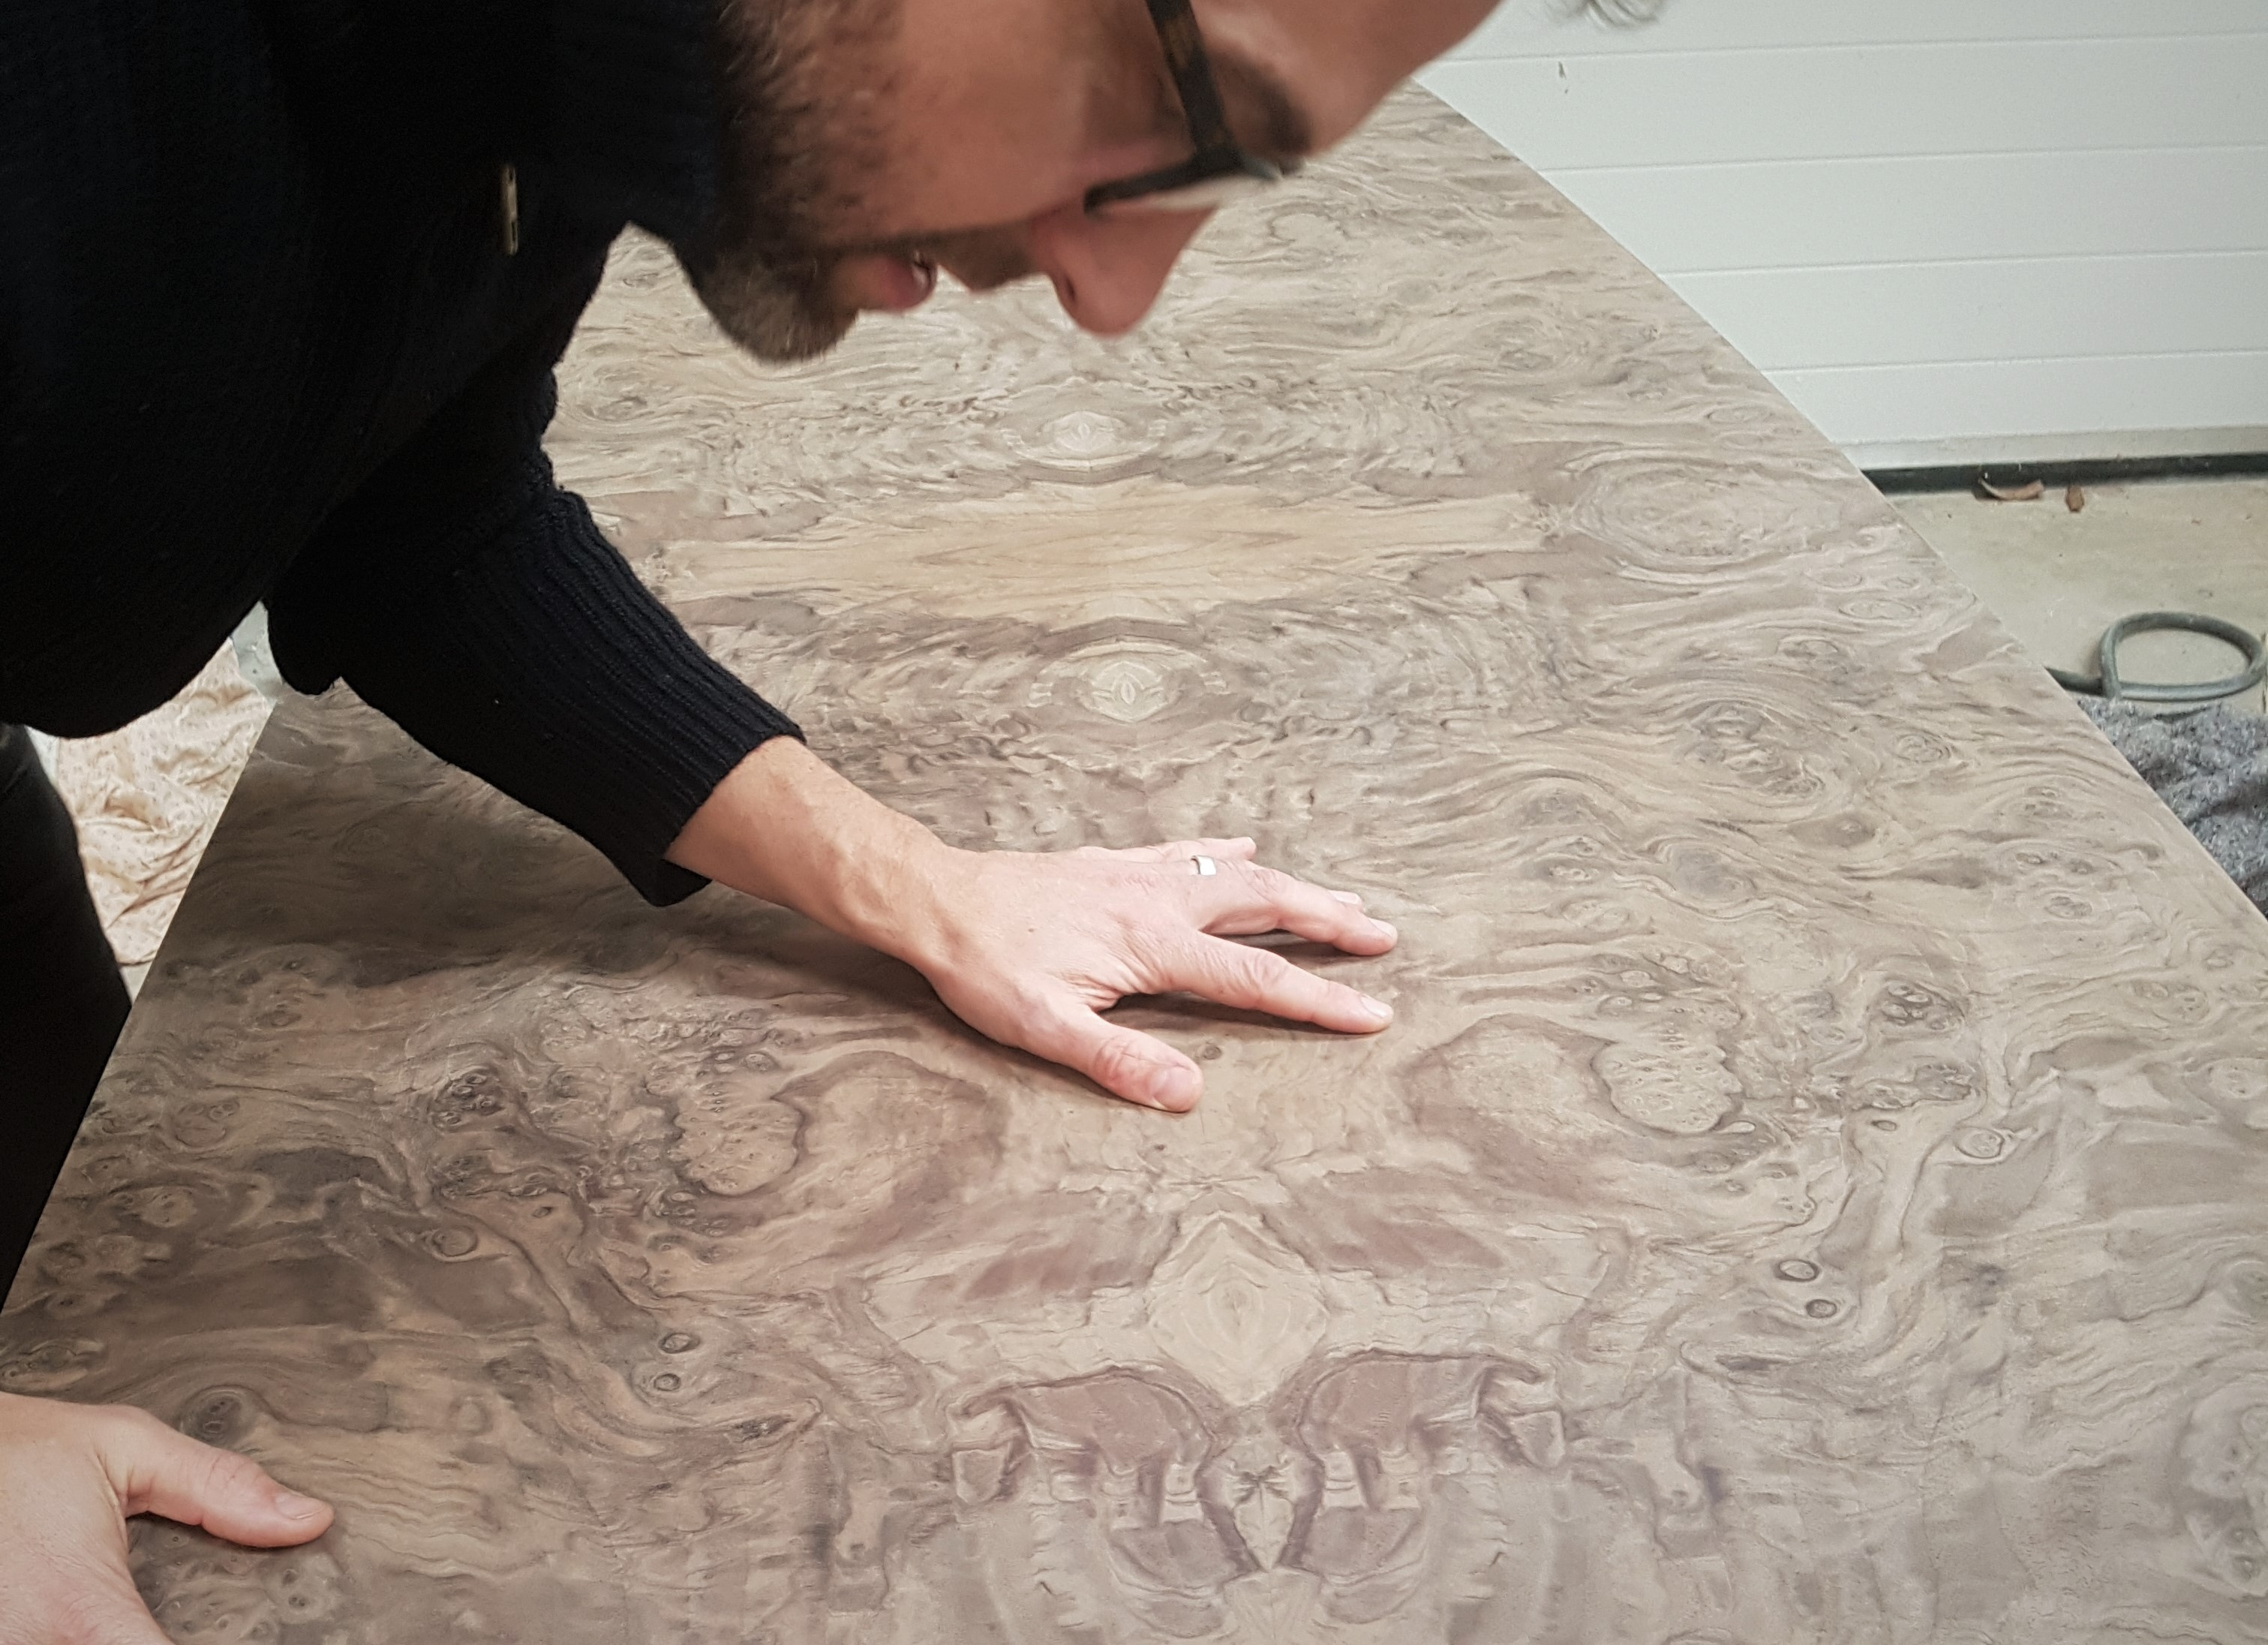 A Splinterworks craftsman examining the unpolished veneer on a bespoke table commission